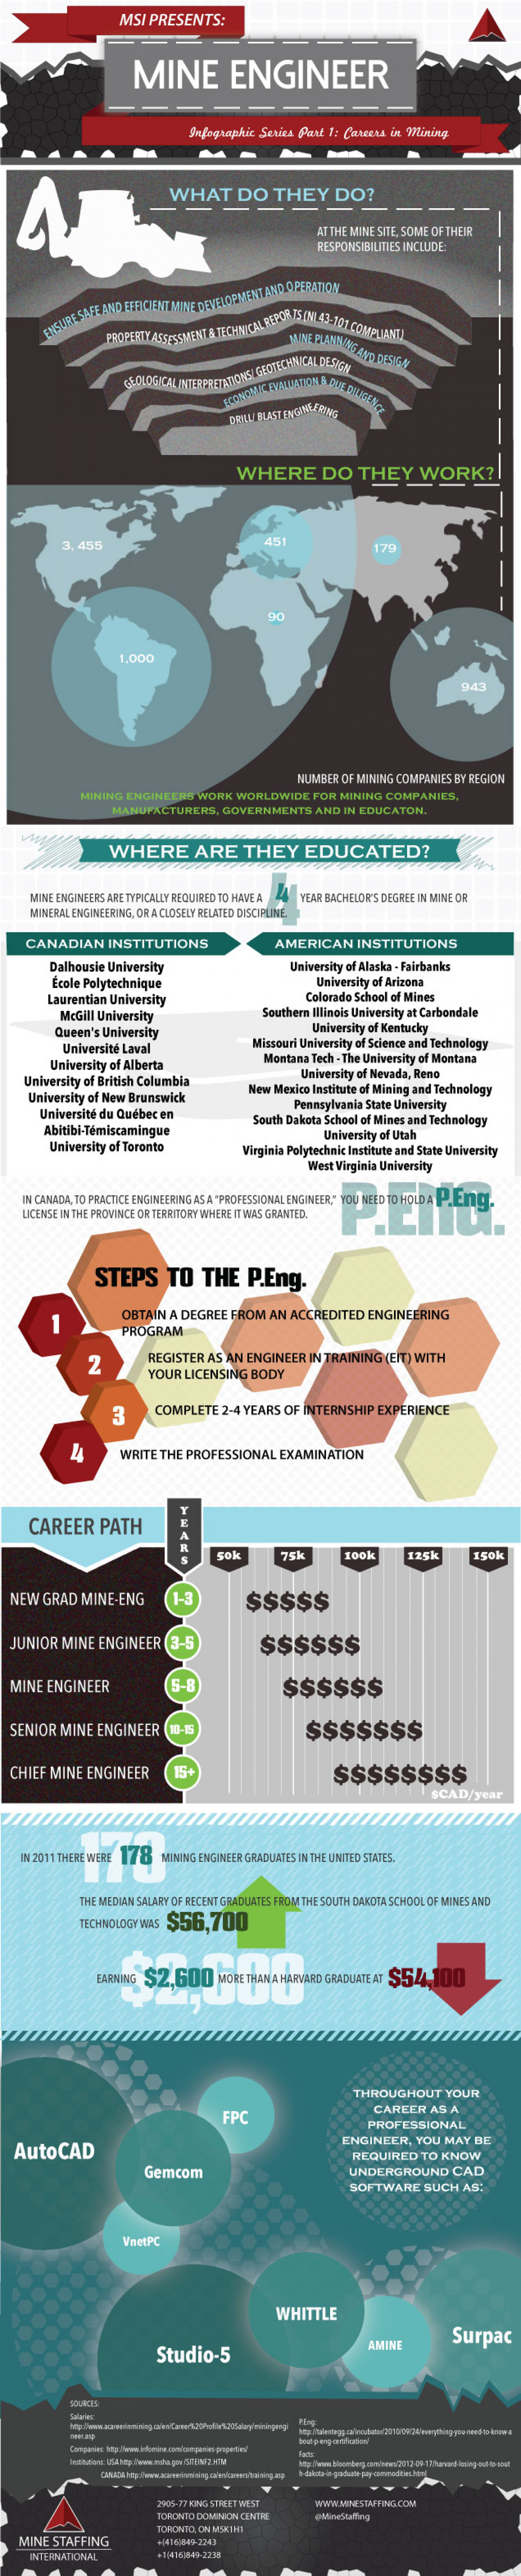 Careers in Mining: Mine Engineer  Infographic